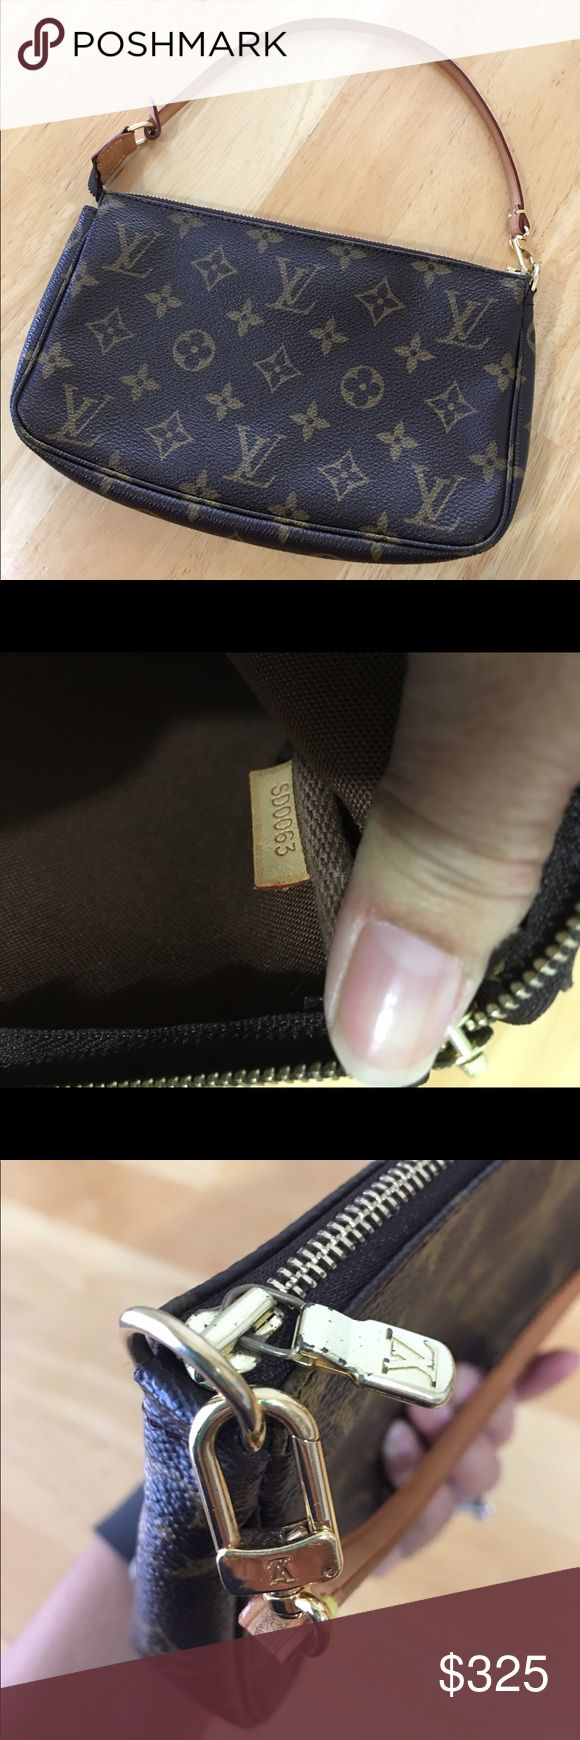 Authentic Louis Vuitton pochette Excellent condition Louis Vuitton pochette with minor wear. Interior and exterior are clean. There is a water mark on the tab, tarnishing on the zipper but glides smoothly. Also a small discoloration on the back side of the strap, see picture #7. It can be worn as a shoulder bag or a wristlet. I bought this bag at South Coast mall in California back in 2003 and was hardly used. I don't have the dust bag or box anymore. Louis Vuitton Bags Clutches & Wristlets